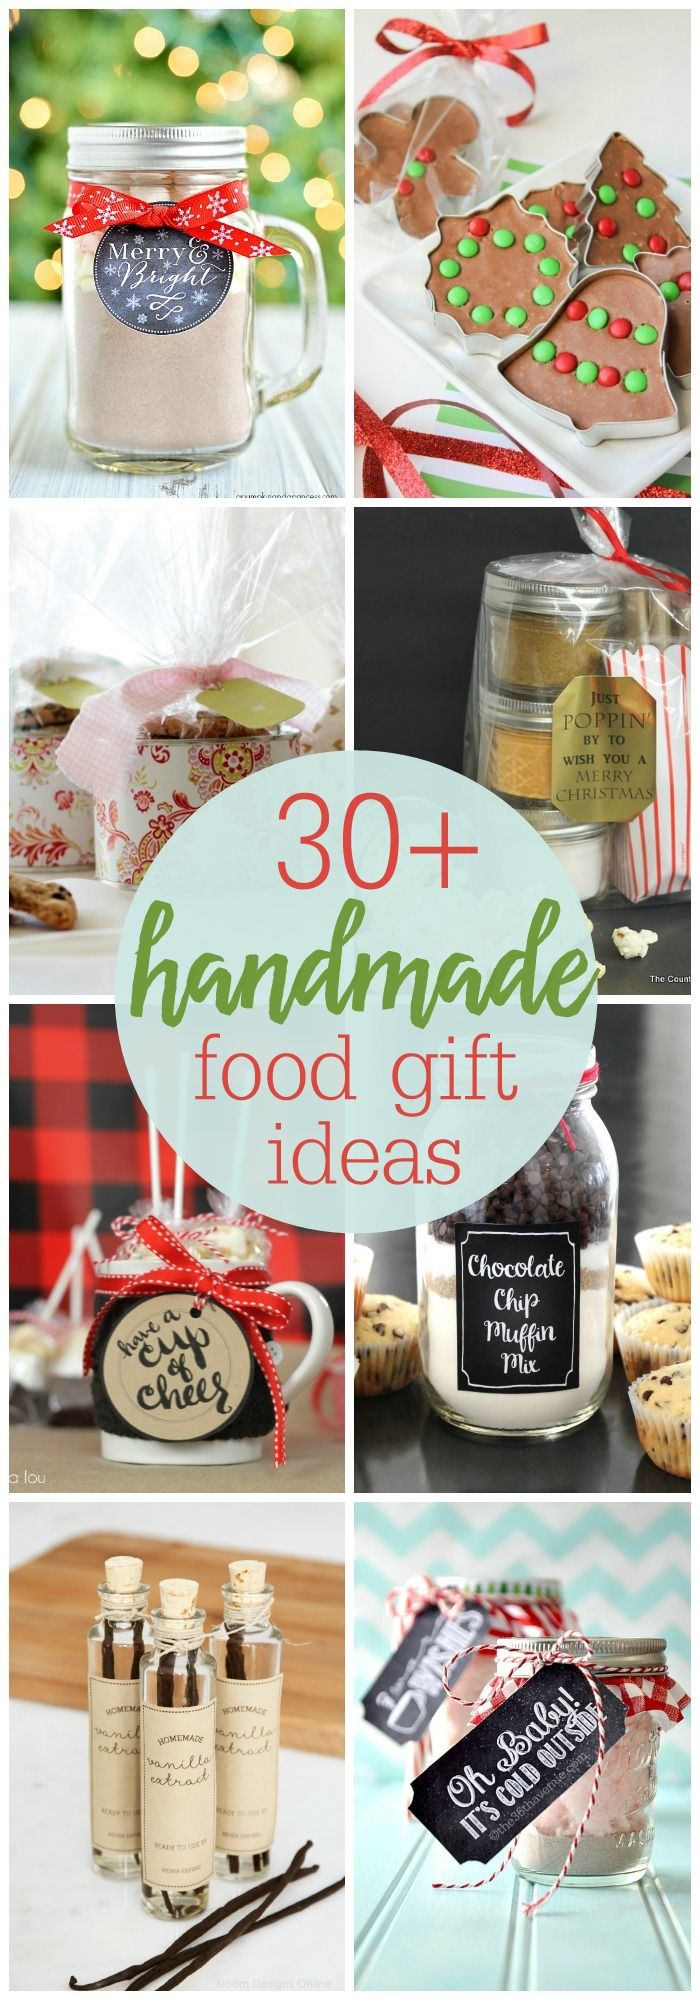 30+ Handmade Food Gift Ideas - so many simple, cute and inexpensive gift ideas…